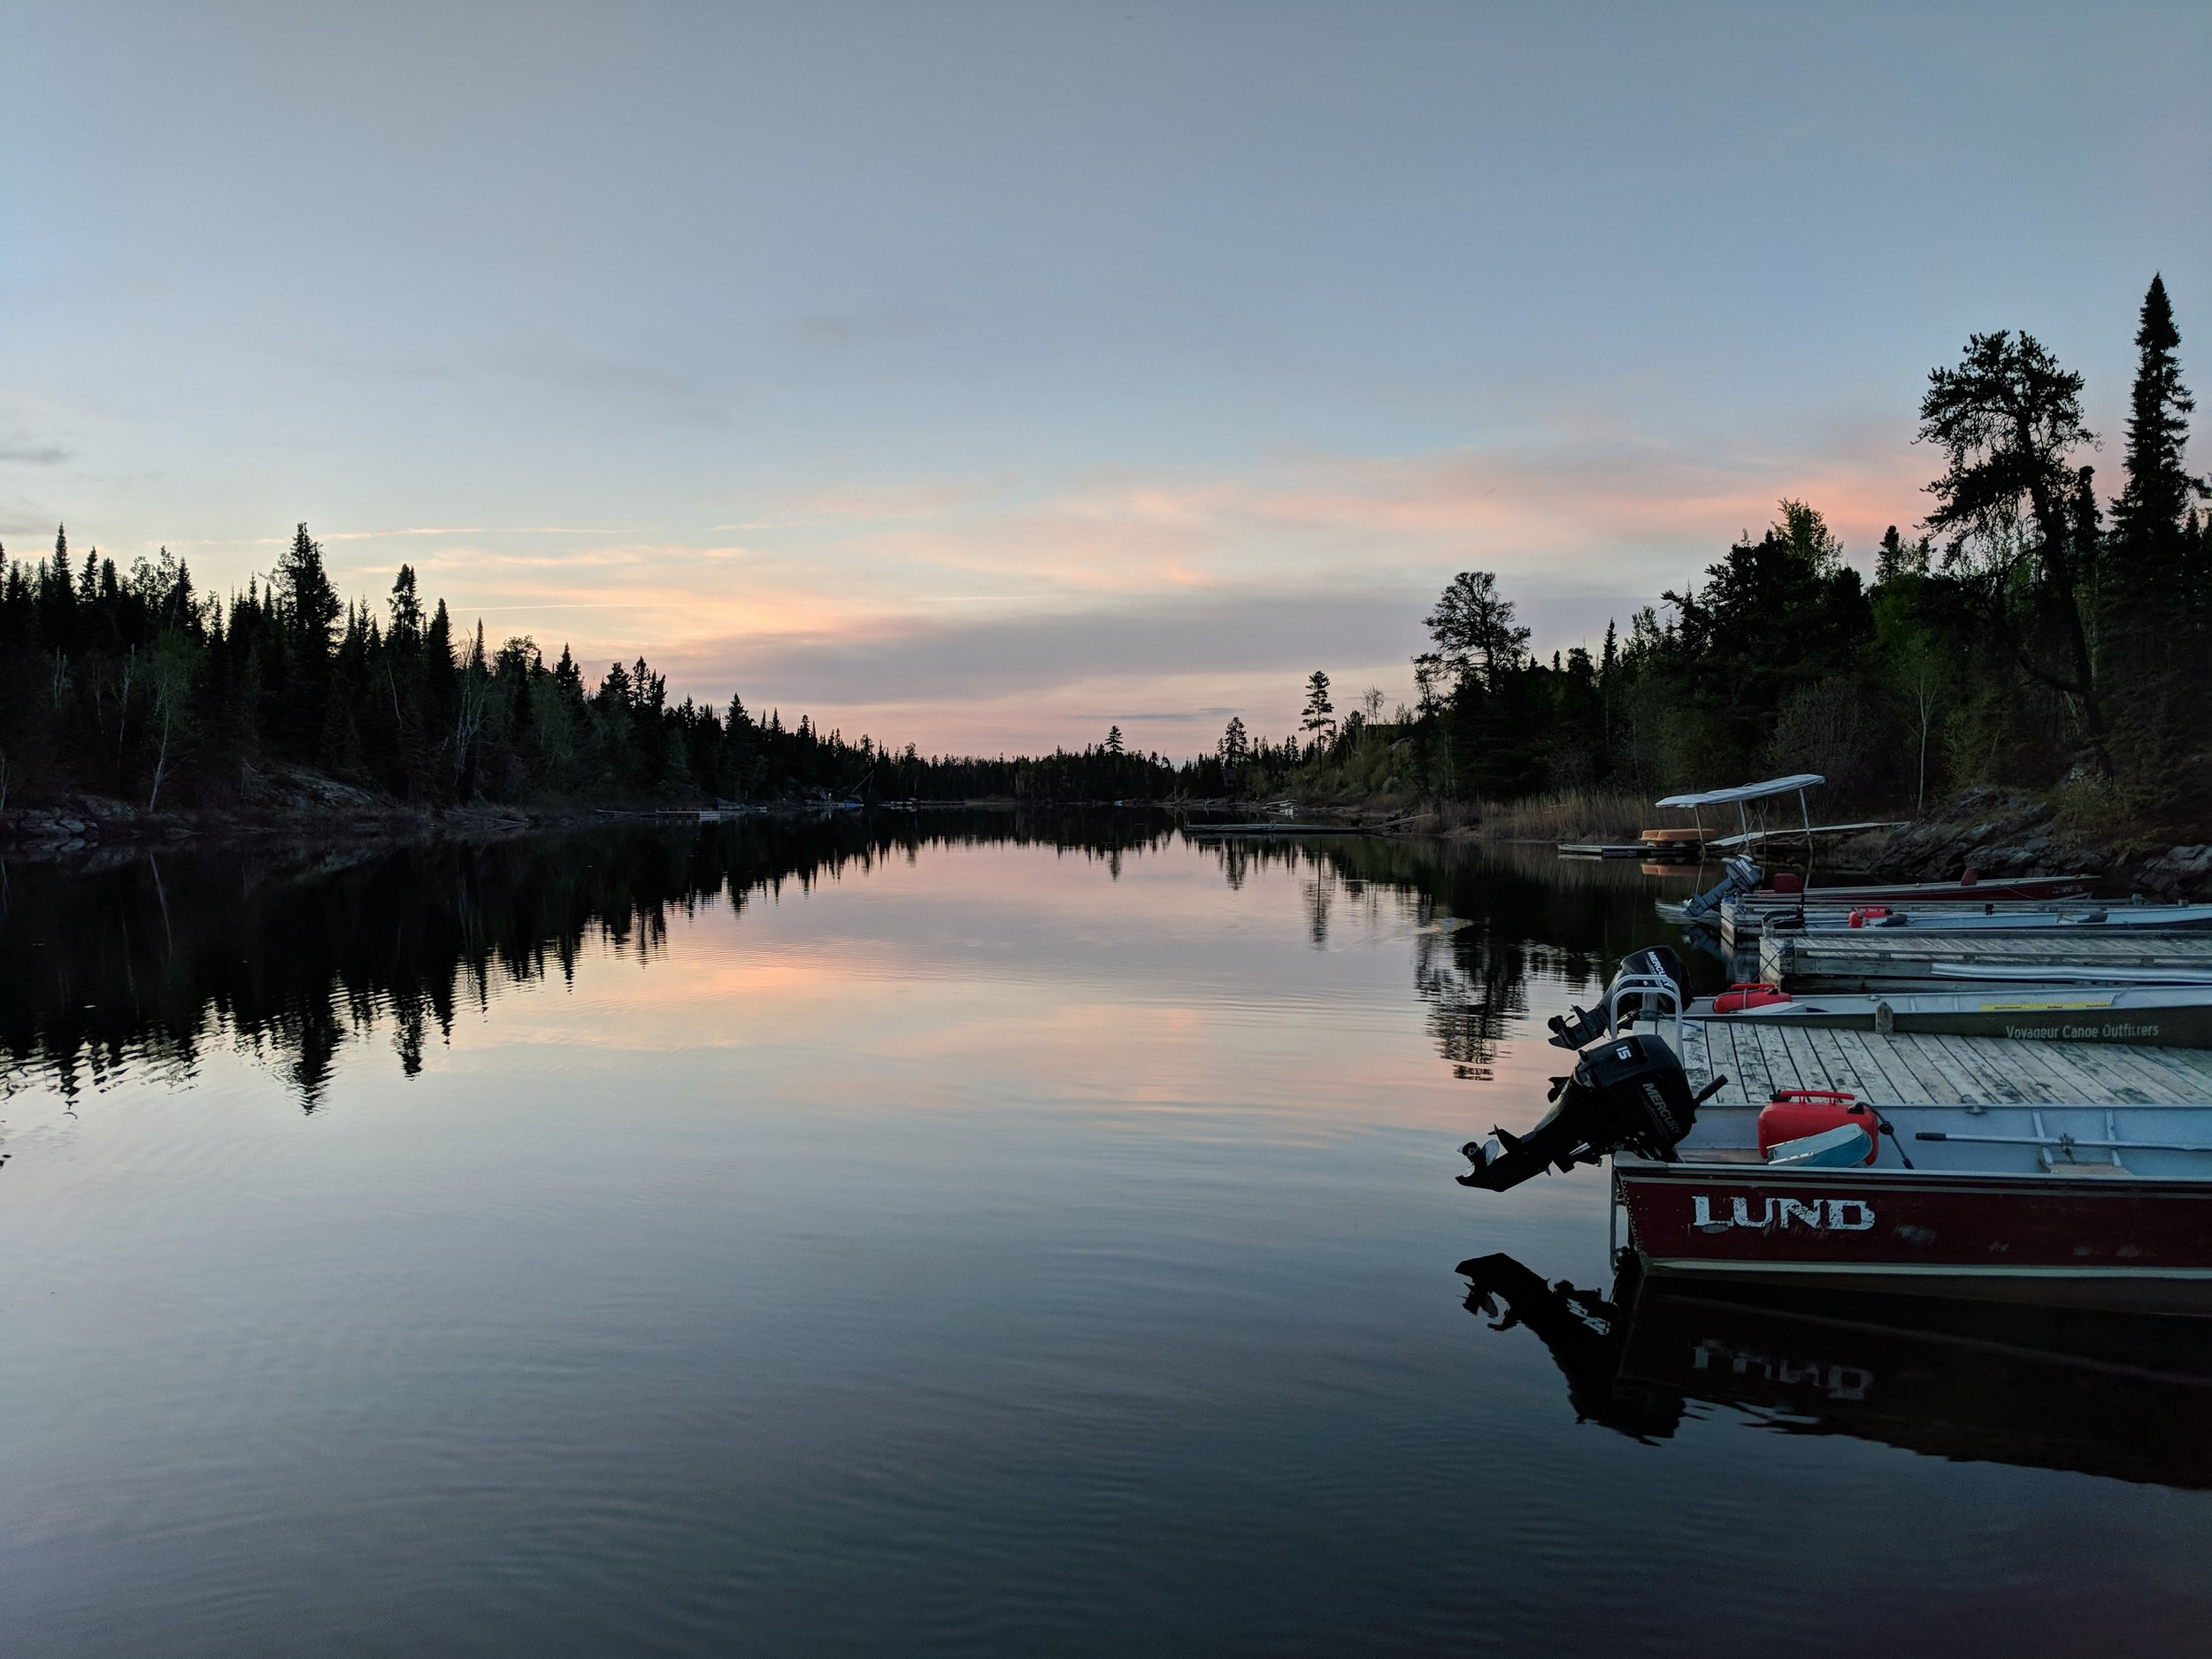 The docks looking north on the Sea Gull River at Voyageur Canoe Outfitters.